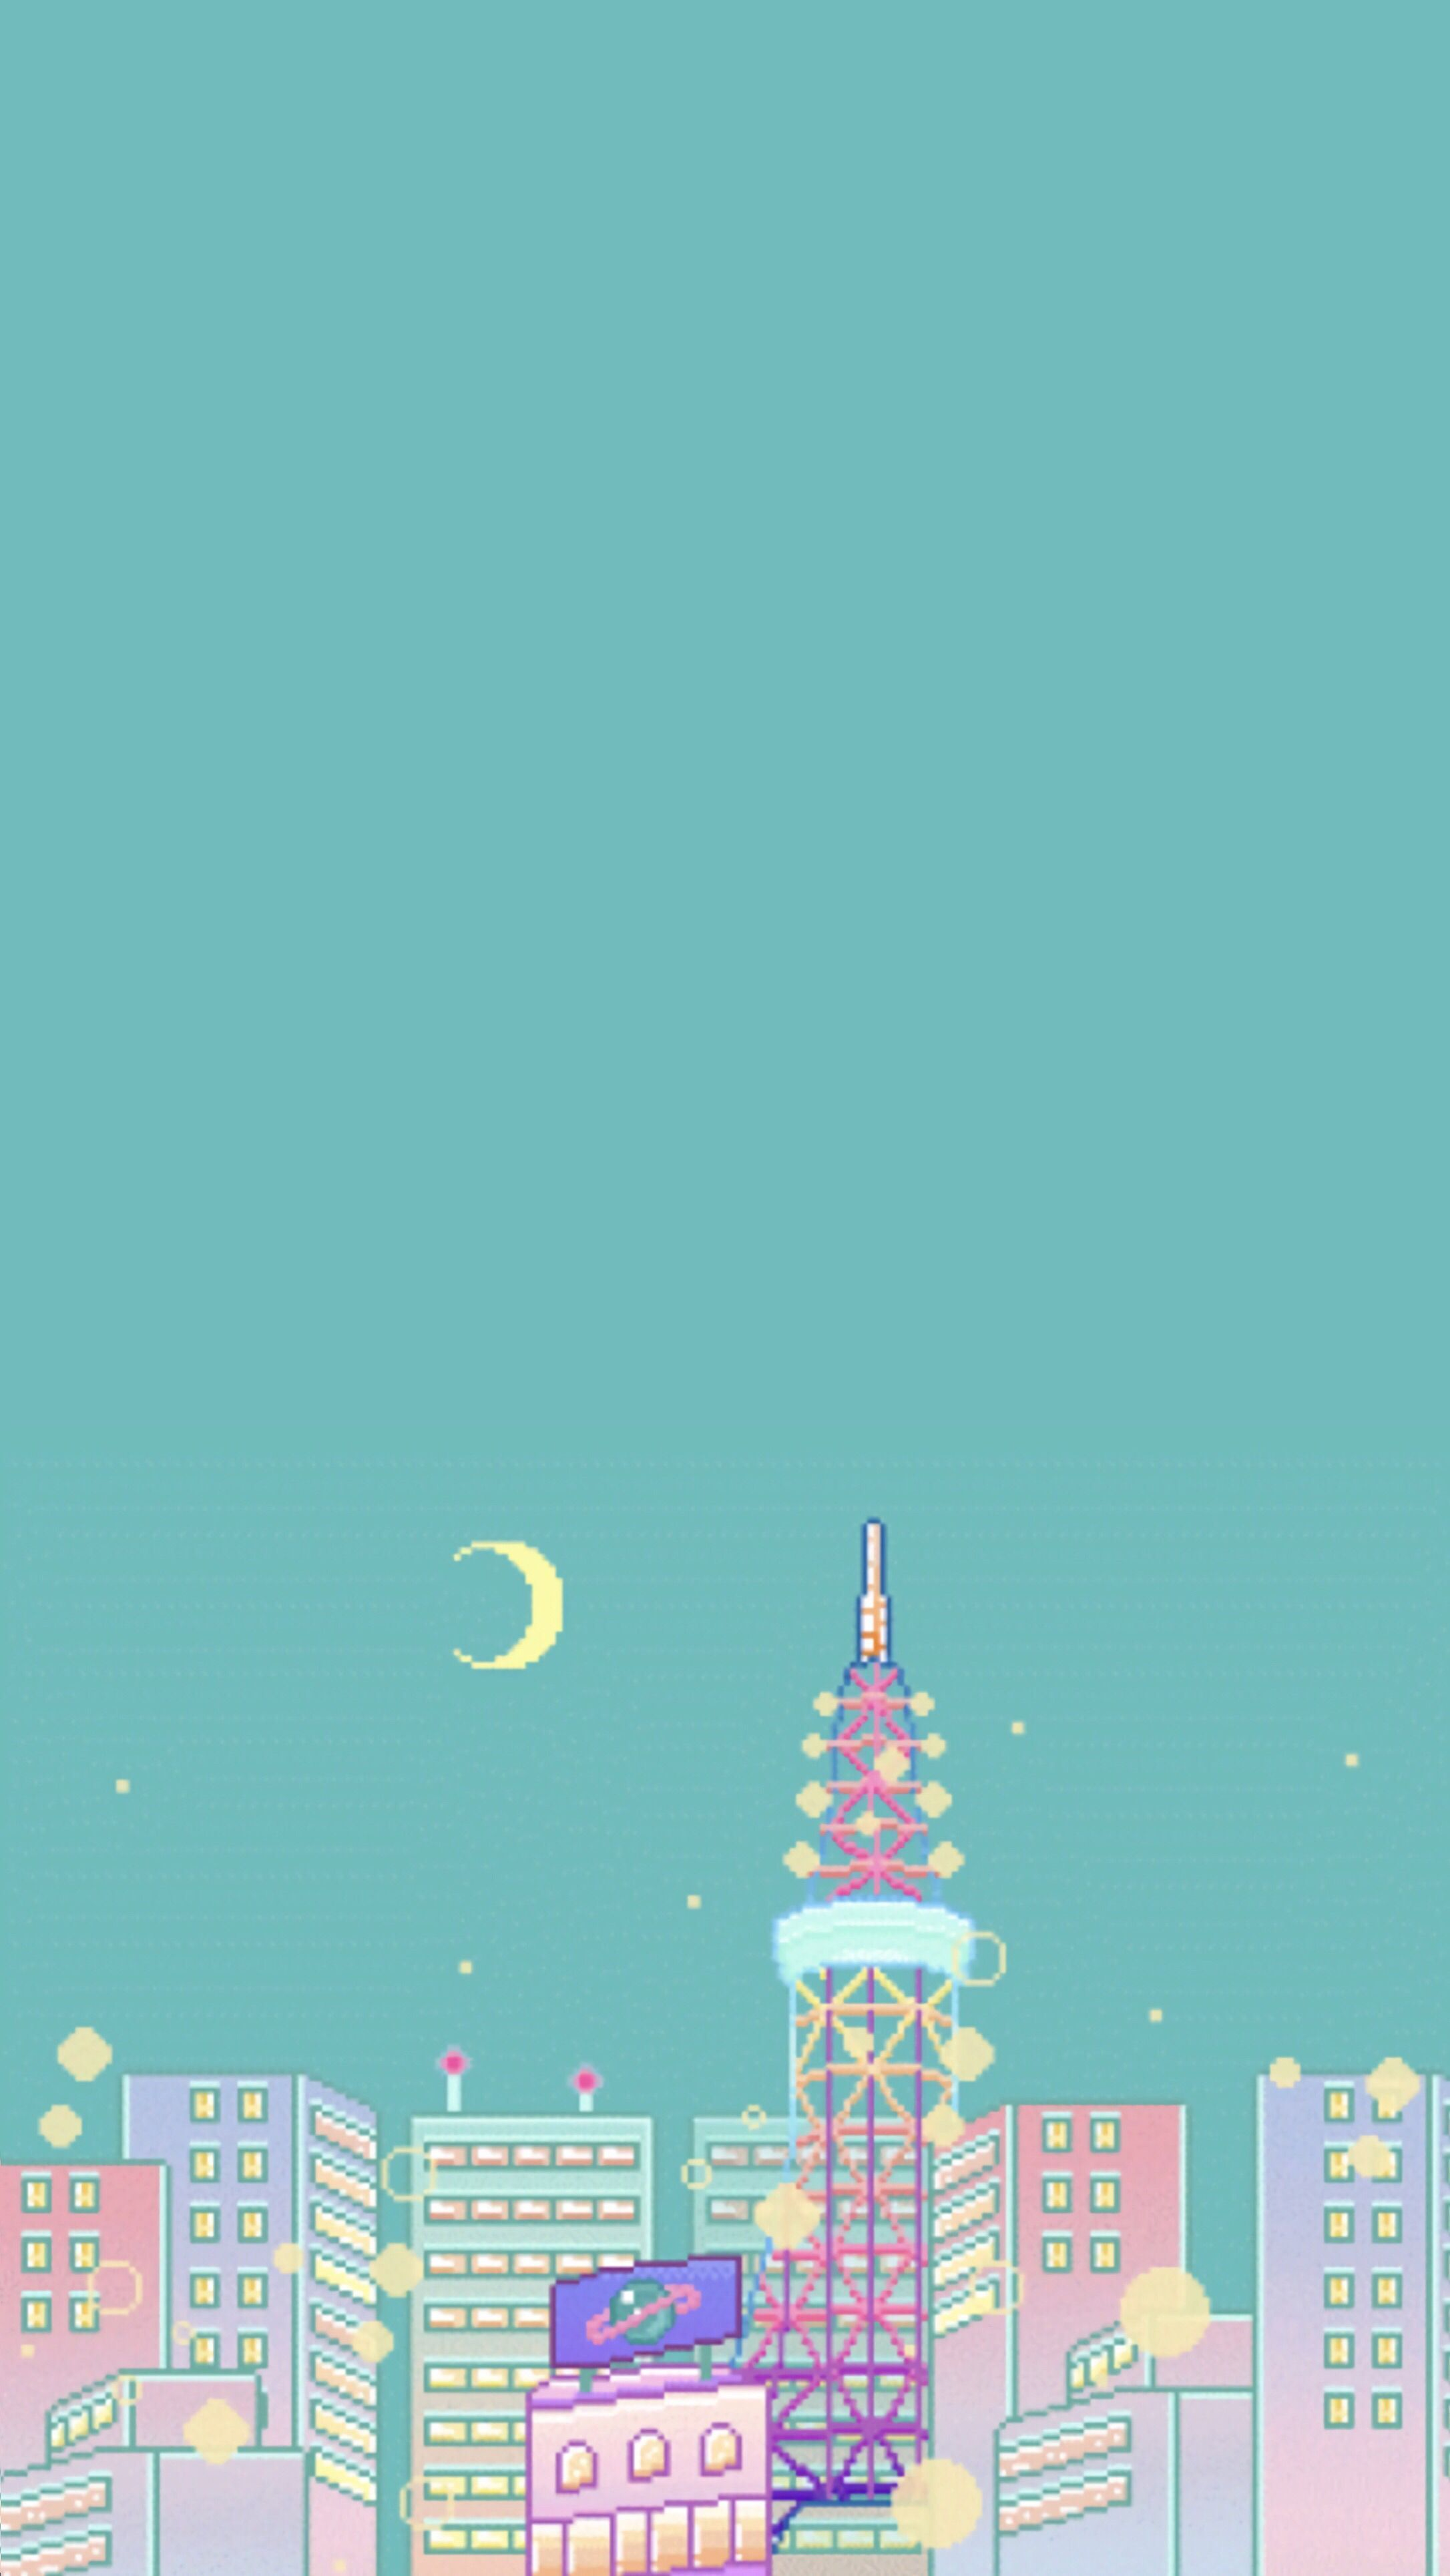 pastel aesthetic city iphone wallpapers on wallpaperdog